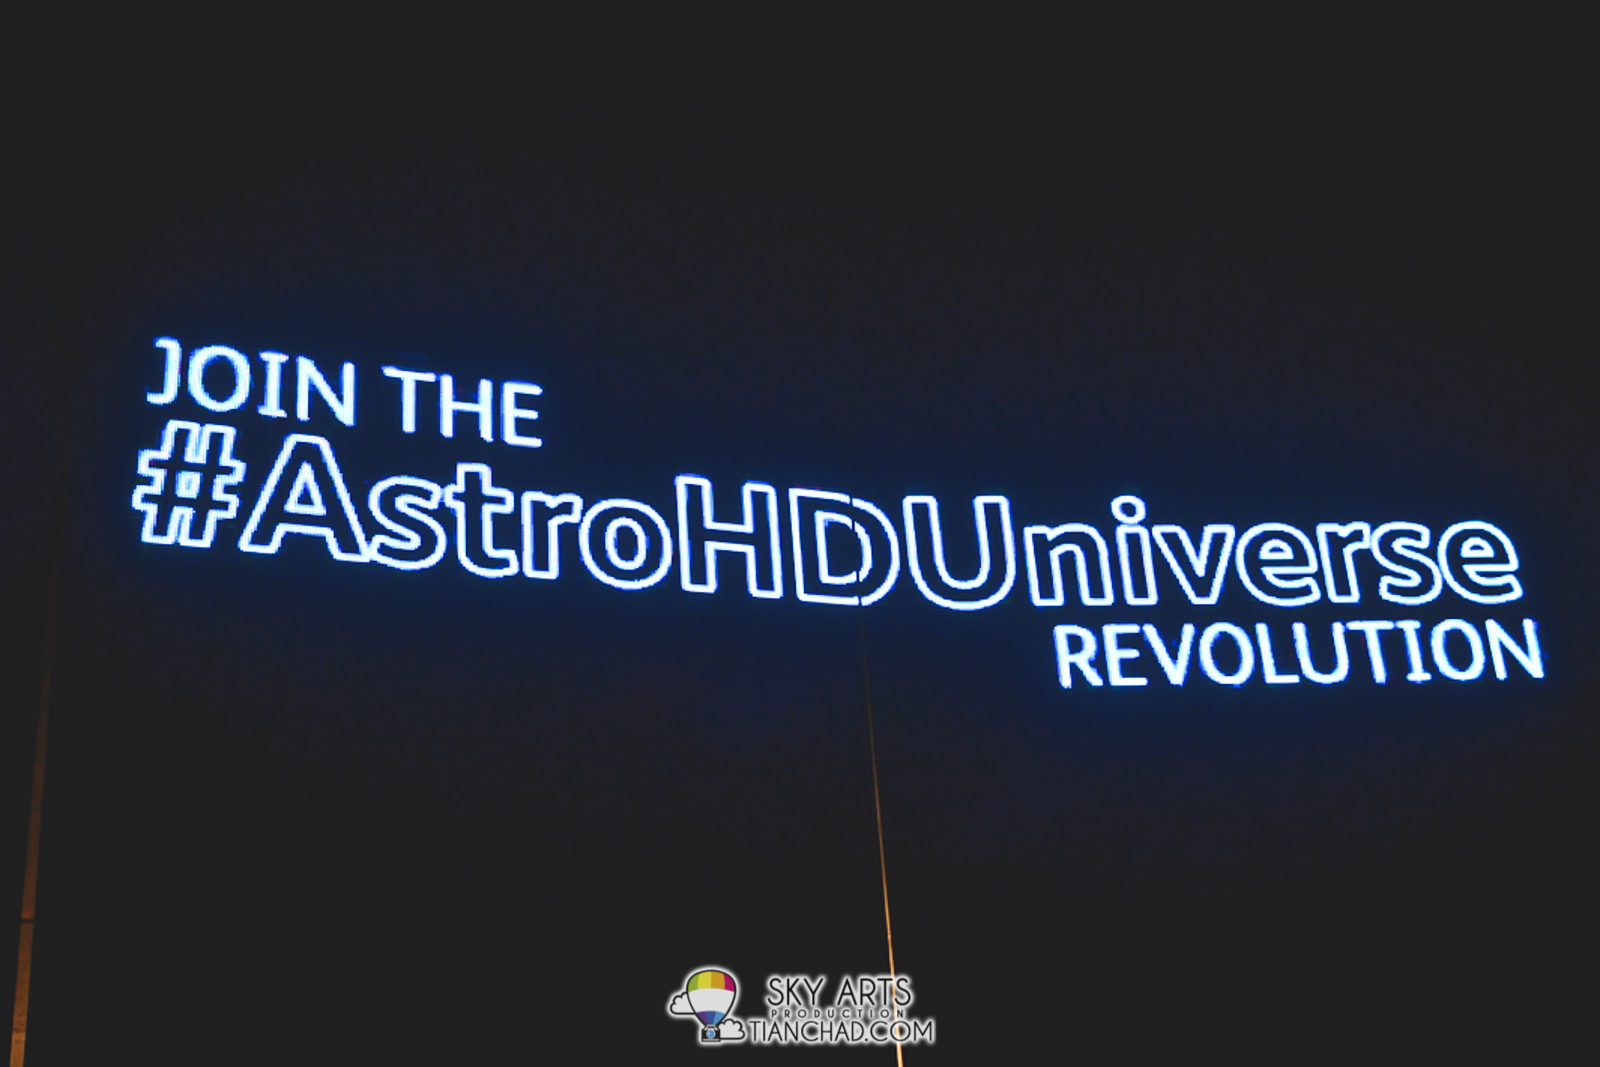 Let's join the #AstroHDUniverse Revolution today!!